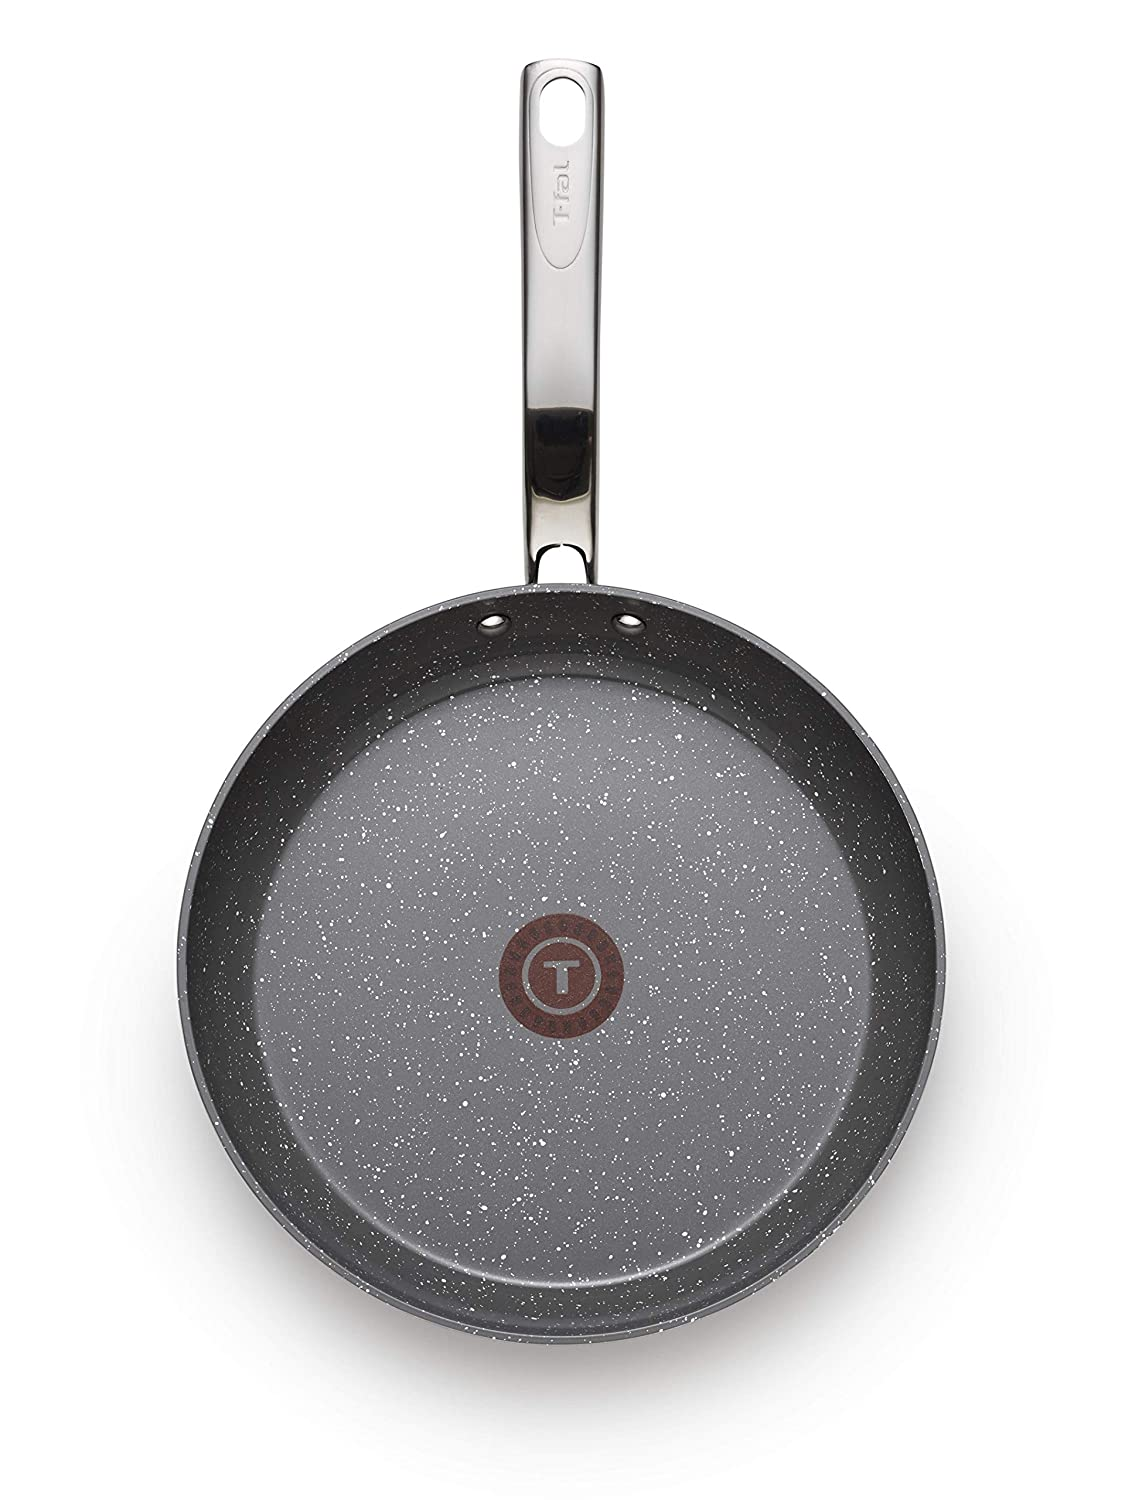 T-fal C41205 Endura Granite Ceramic Nonstick Thermo-Spot Heat Indicator Dishwasher Oven Safe PFOA Free Fry Pan Cookware, 10.5-Inch, Gray